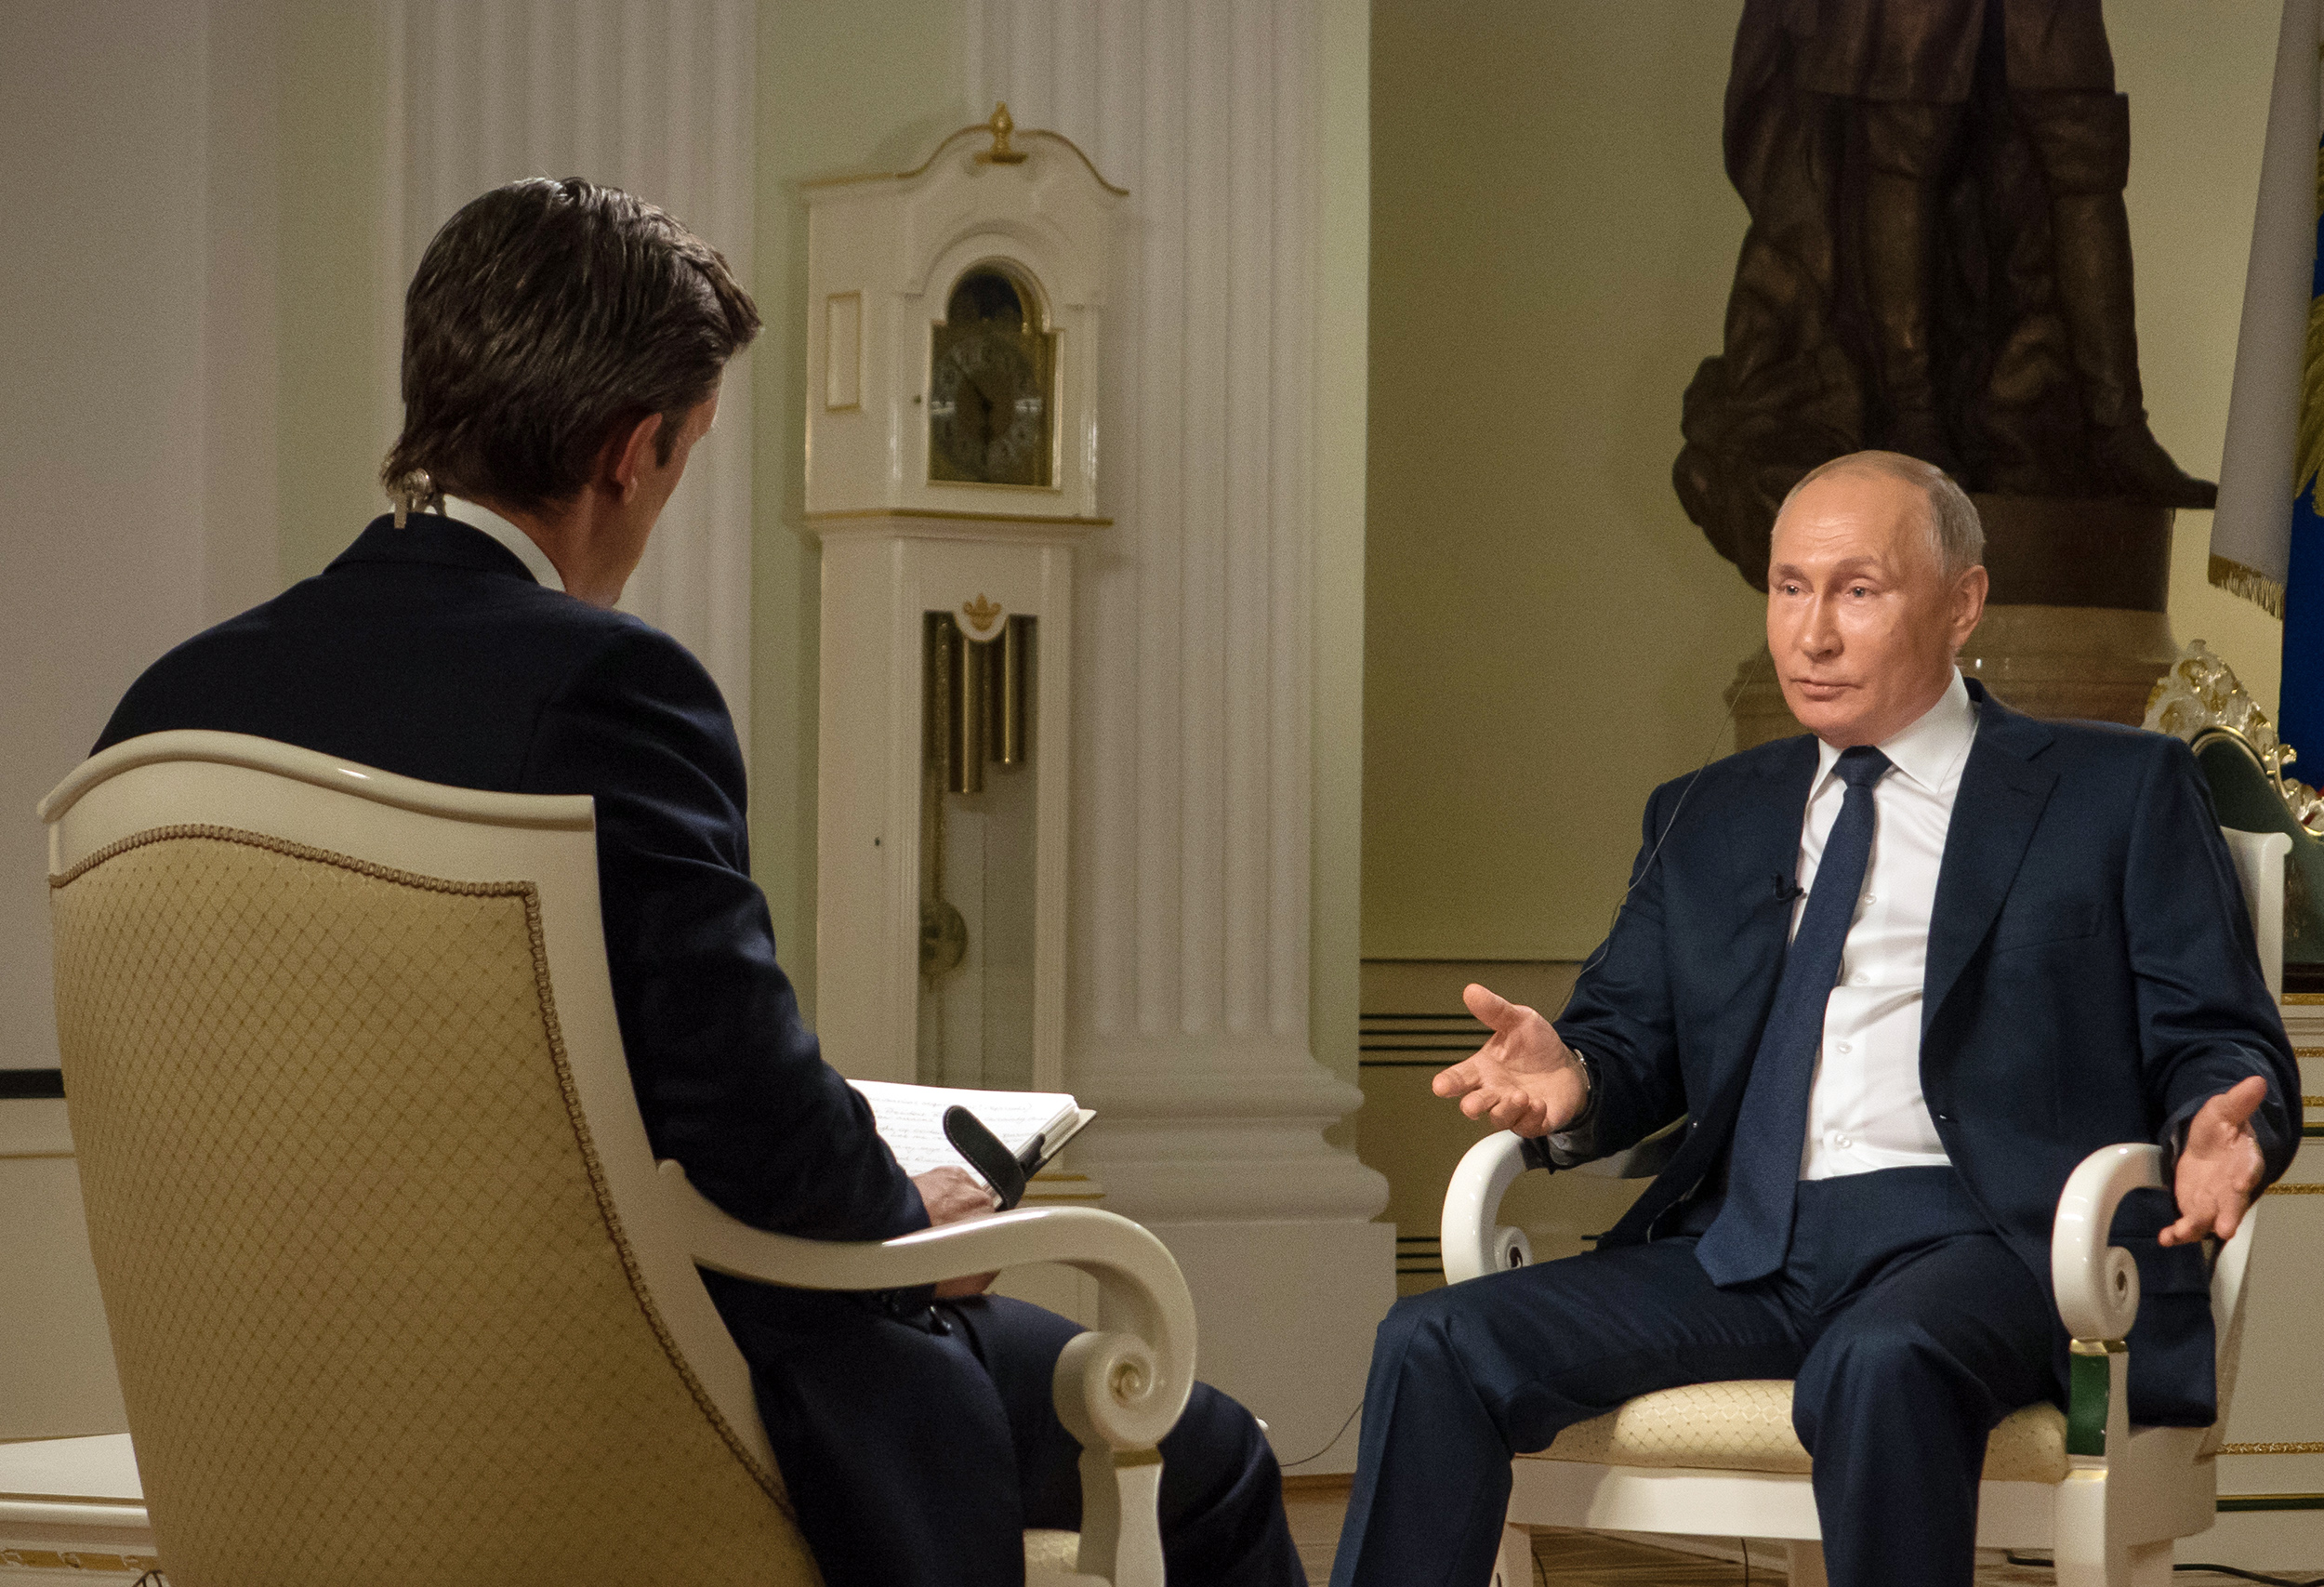 In NBC interview, Putin says he can work with Biden